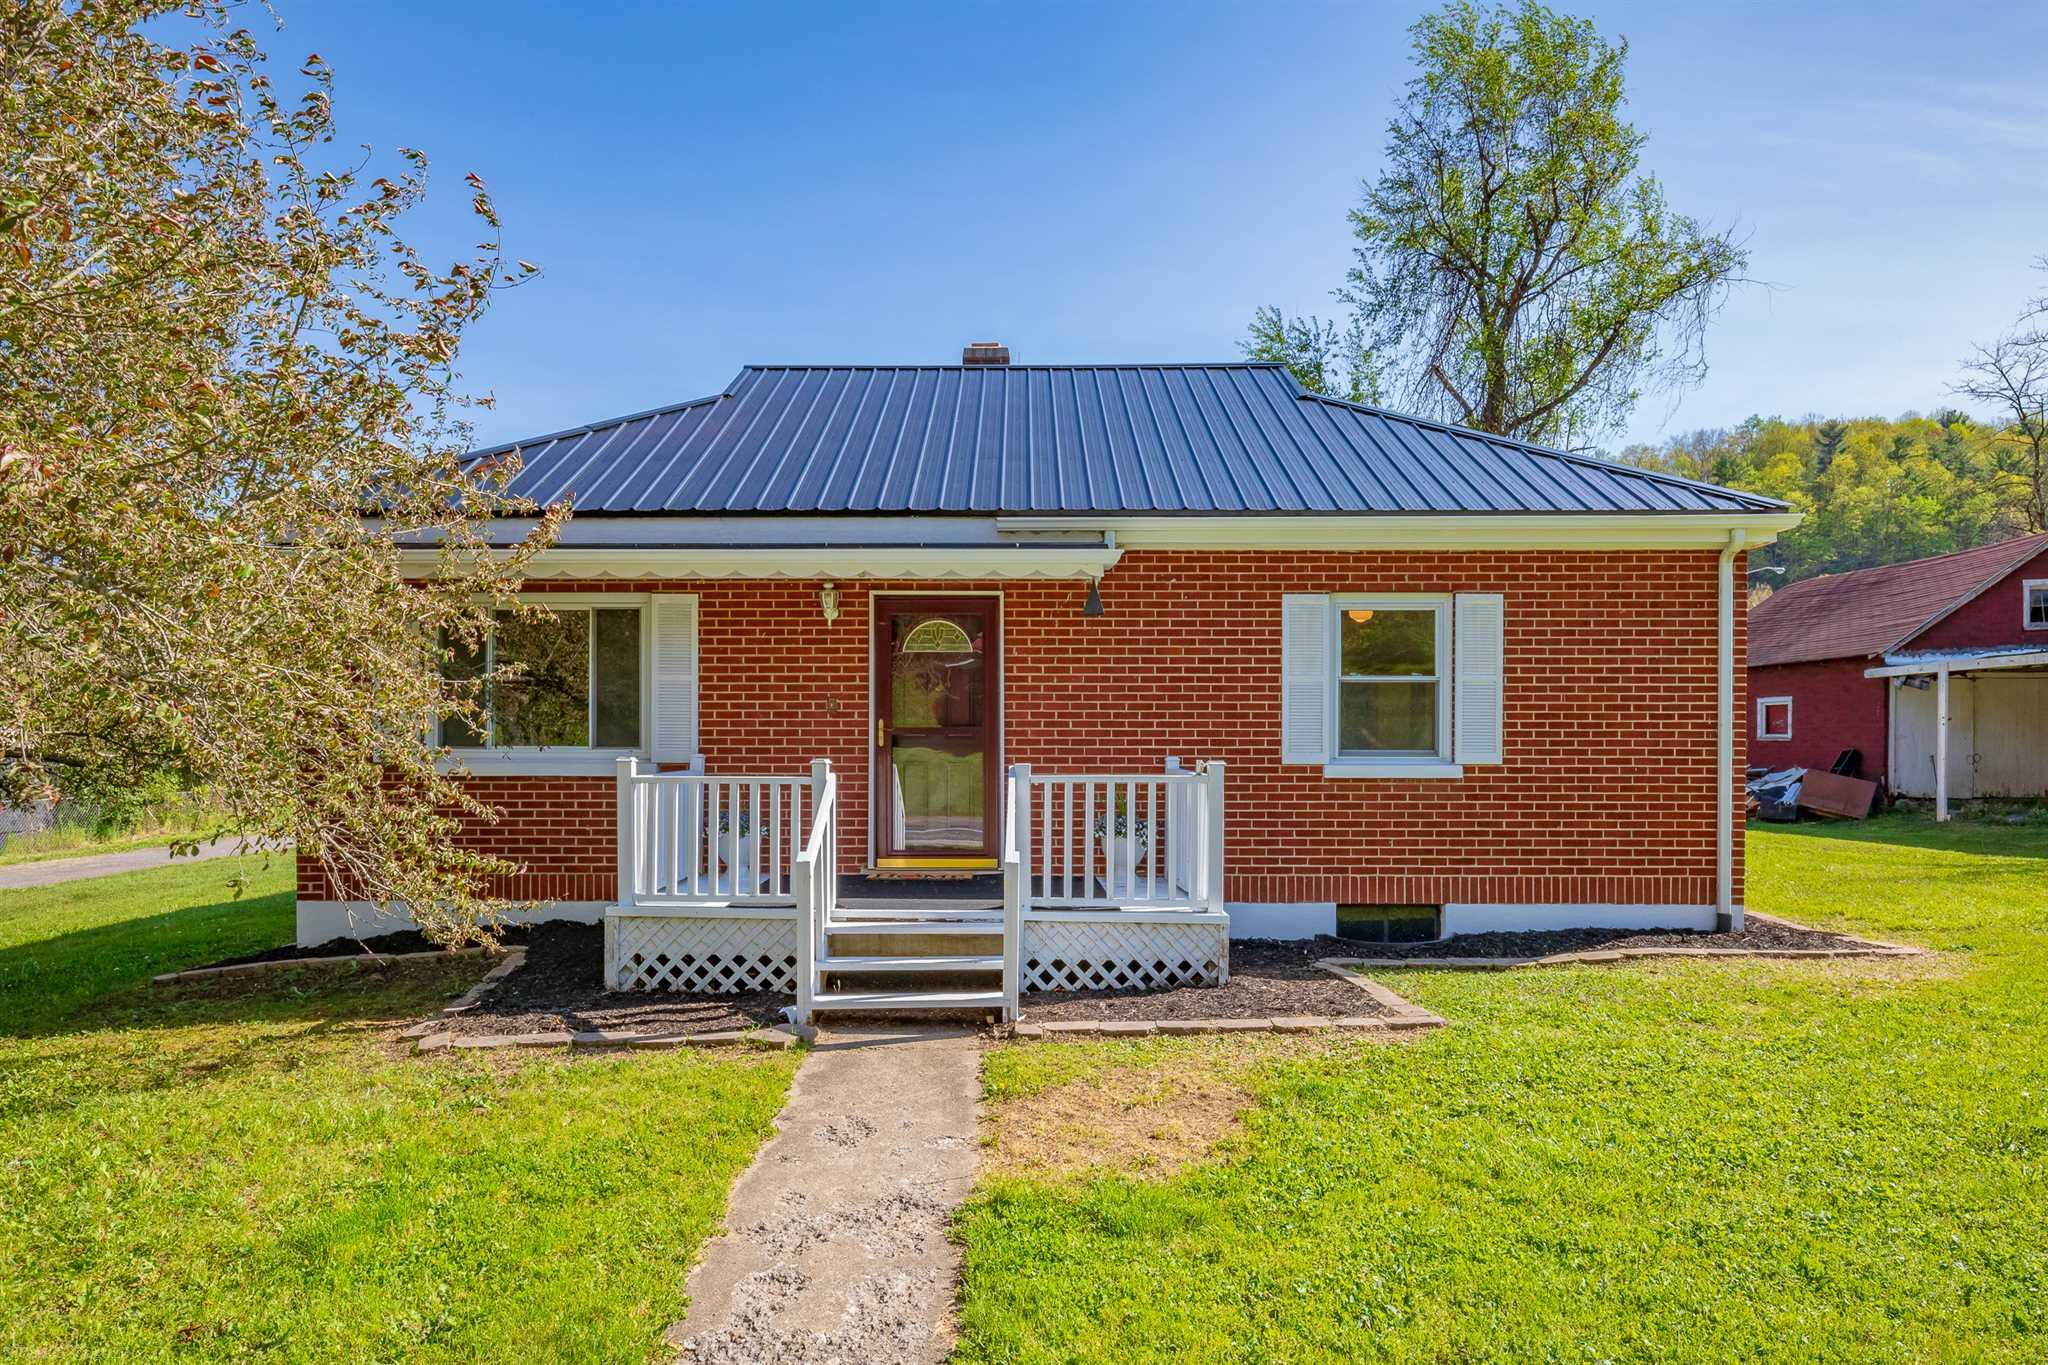 Charming 2 BR 1 BA brick home in Rocky Gap, VA on a nice, level lot that has been partially remodeled. Included is a large 2 car detached garage and a smaller outbuilding. Located literally within walking distance of Bland County High School and the post office. Features include a brand new metal roof, some new plumbing, heat pump for heating and cooling, mostly hardwood flooring, fresh paint, insulated tilt windows, public water, and it's own septic. Basement is unfinished. Nice large deck at the rear. Road frontage on state maintained road. Range/oven and refrigerator included as well. Terrific starter home for a younger couple or ideal for an older couple looking to downsize.